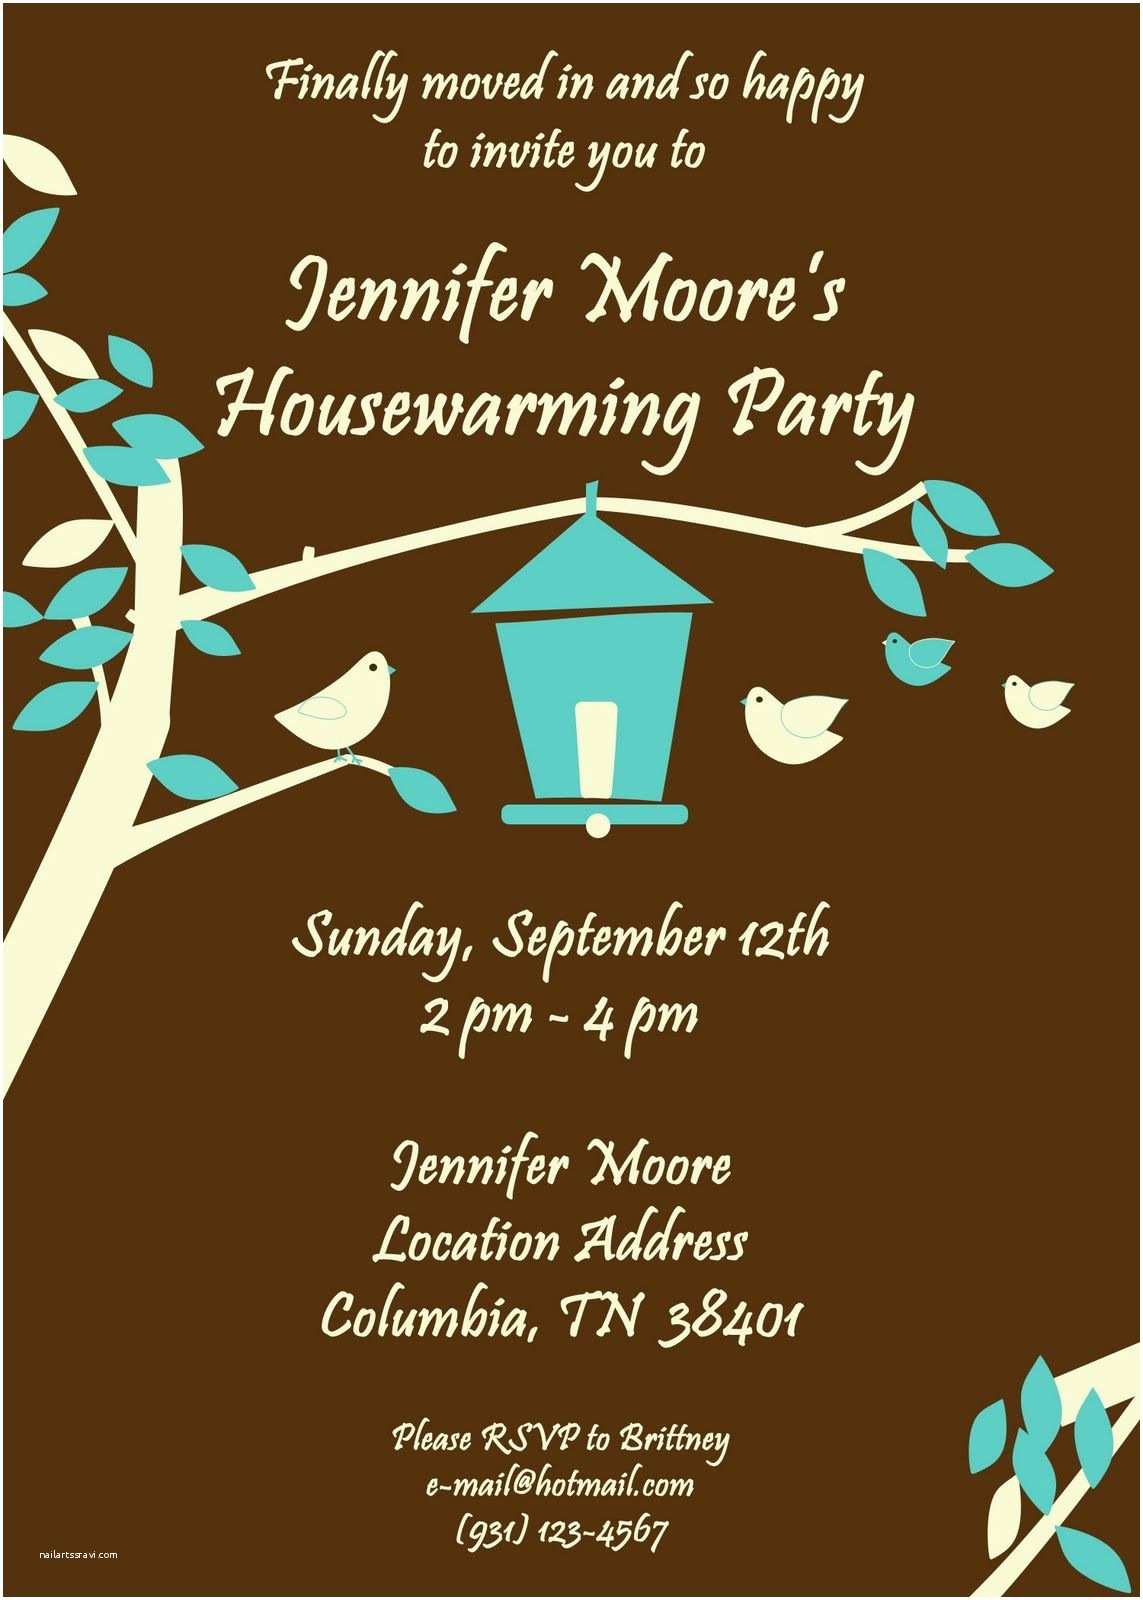 House Warming Party Invitations Fanci Cakes & More Housewarming Party Cake & Invitation